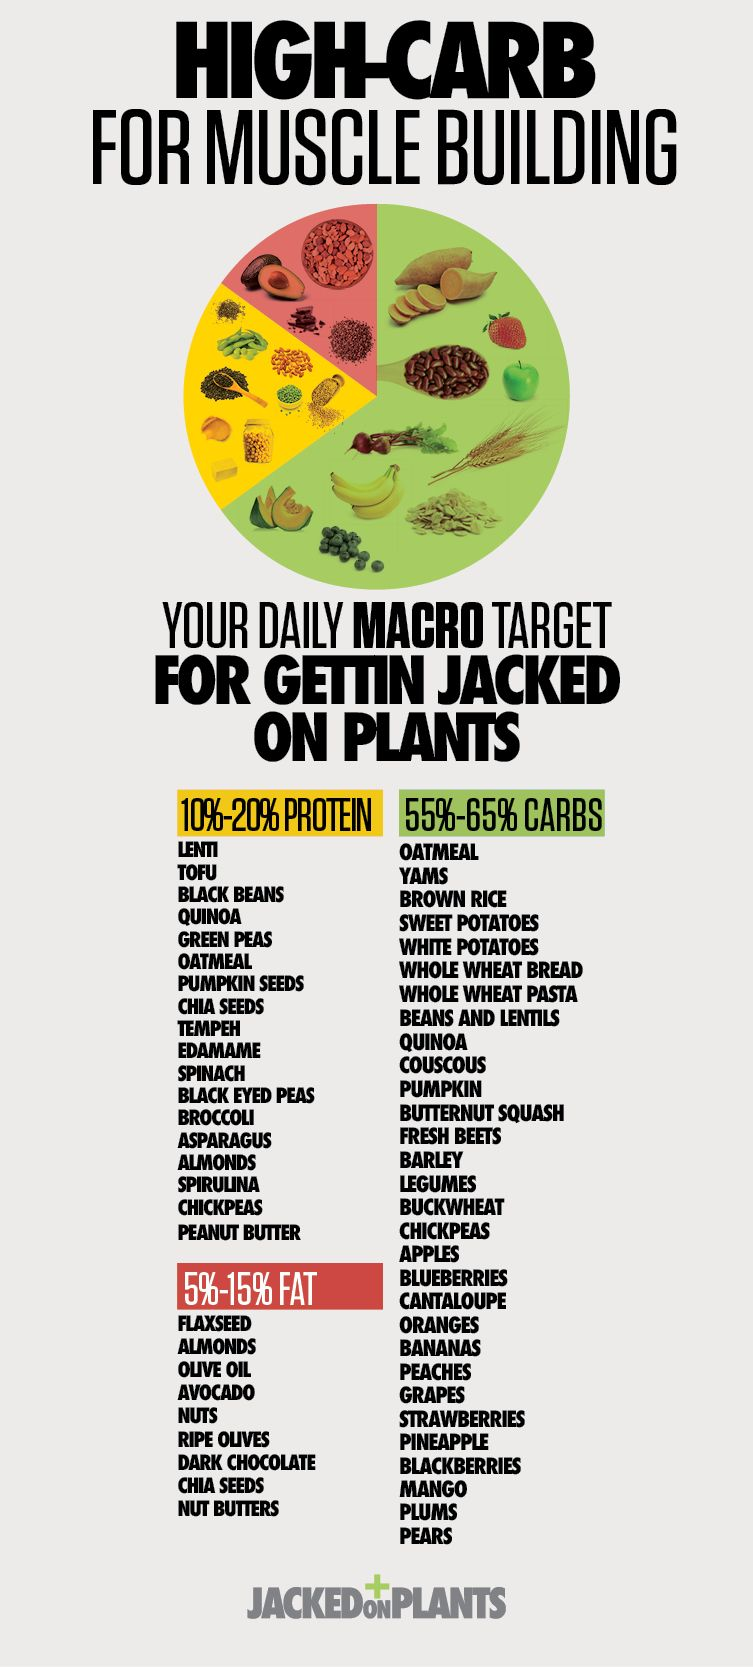 HighCarb For muscle building.Your daily Macro target